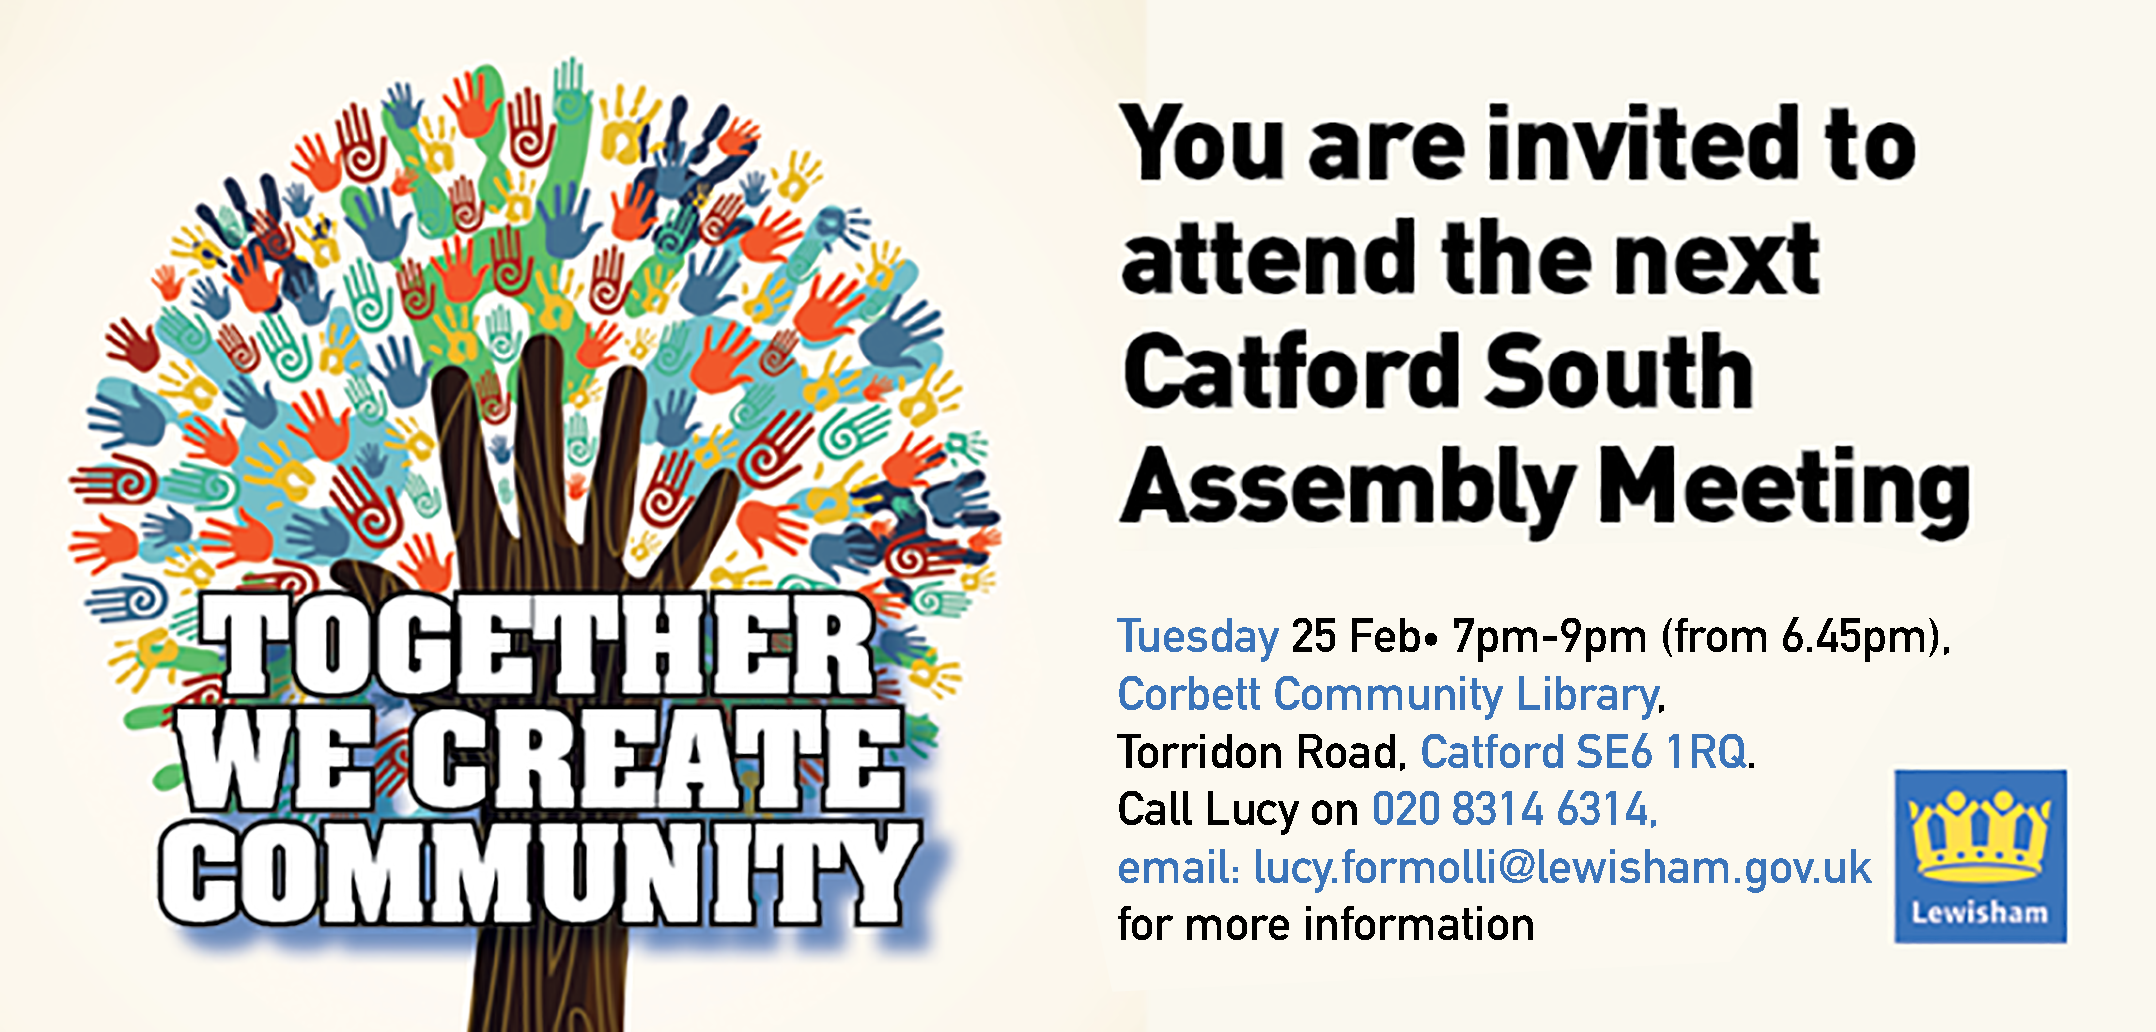 Catford South Local Assembly meeting – Tuesday 25 February. 7pm